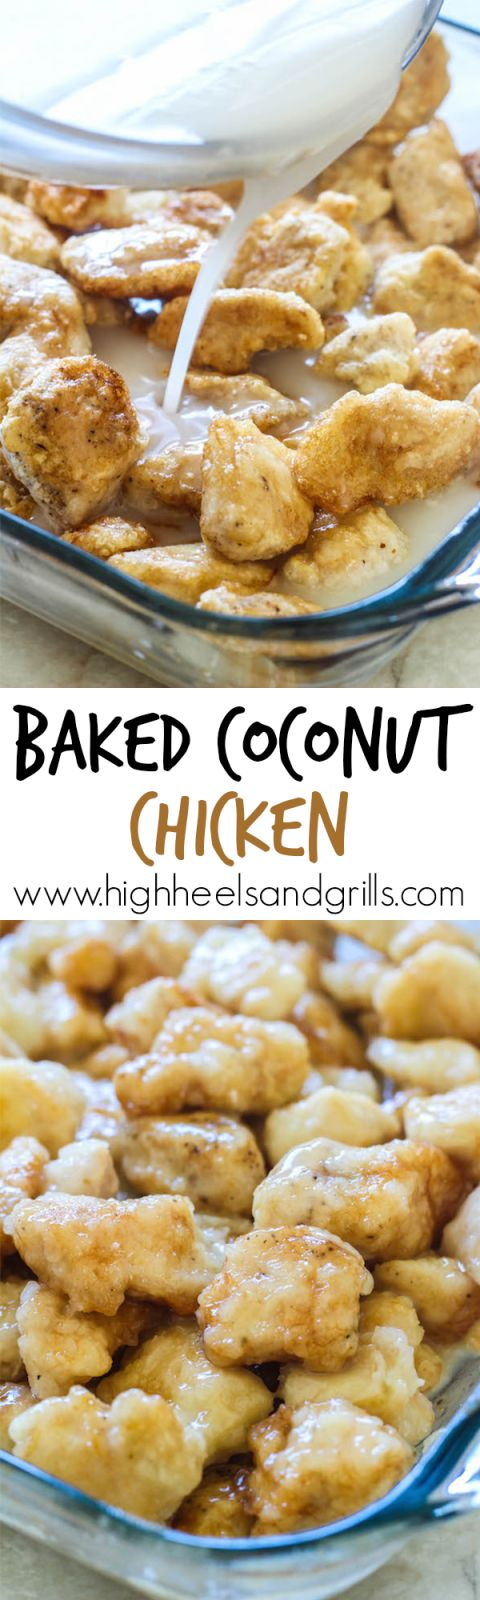 Baked Coconut Chicken. Better than take-out and so easy to make! This will be your new favorite dinner recipe.